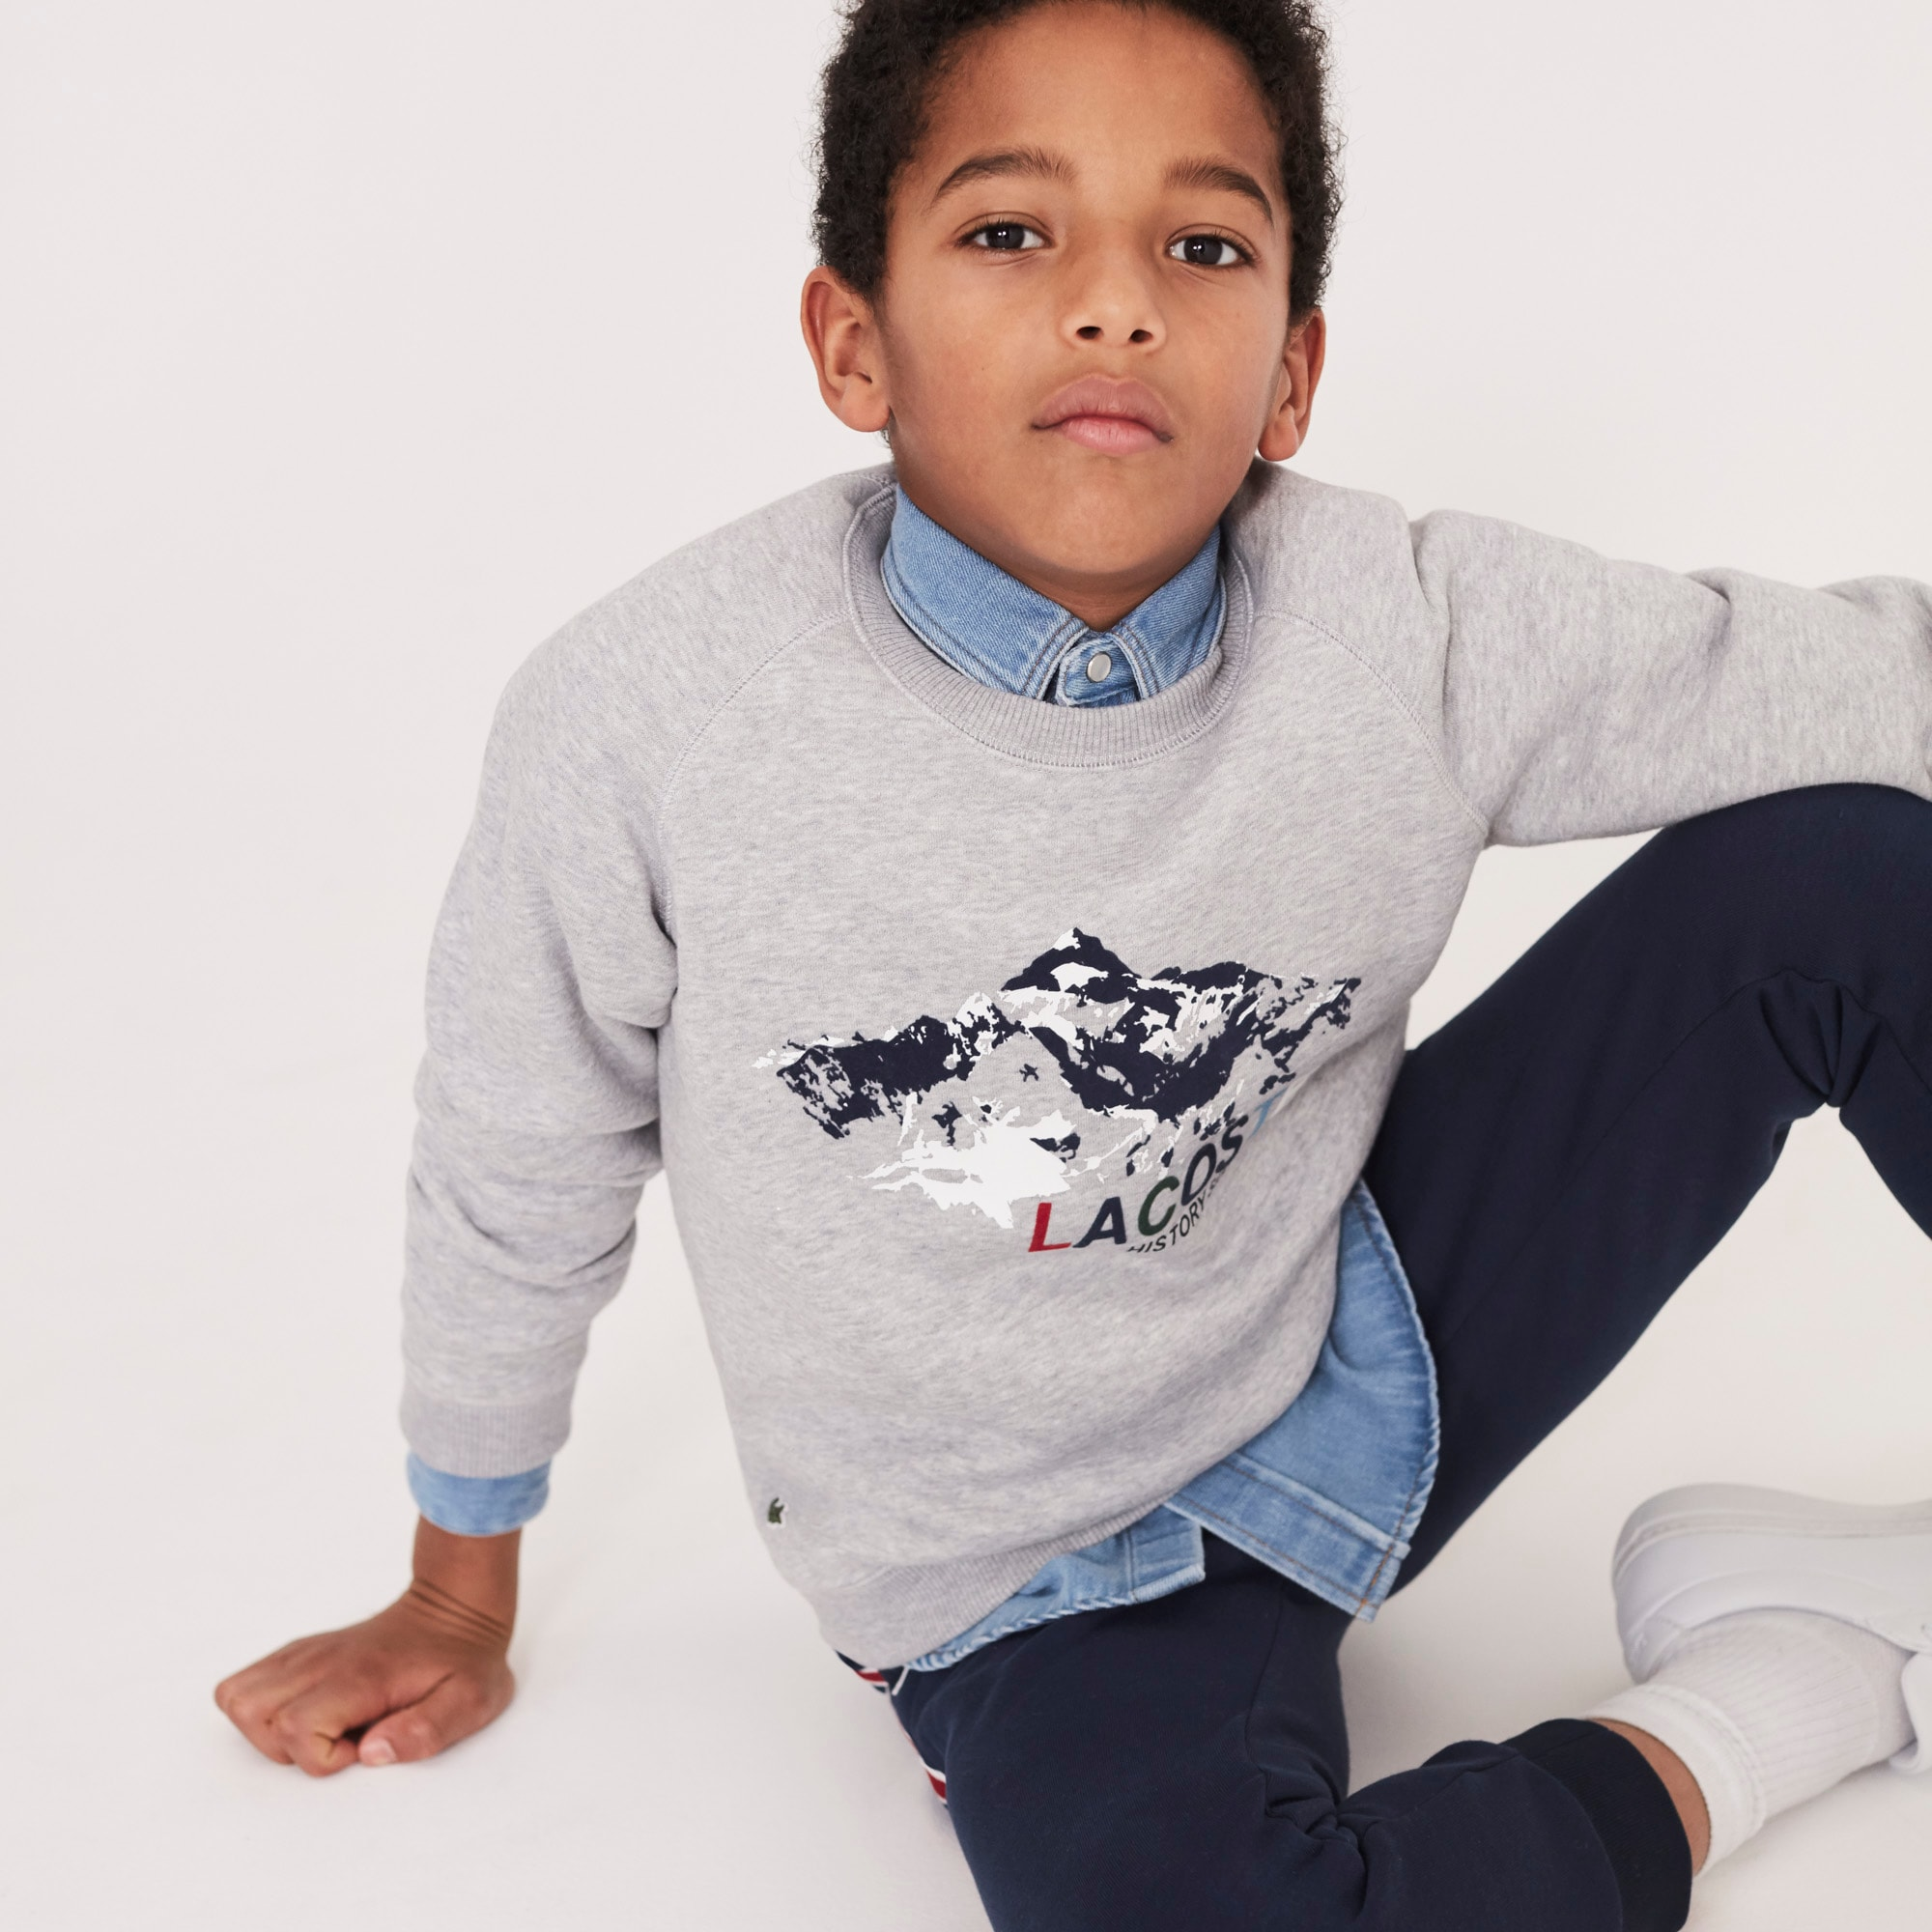 Collection Fashion Kids Clothing Lacoste Sale Xvg7wq